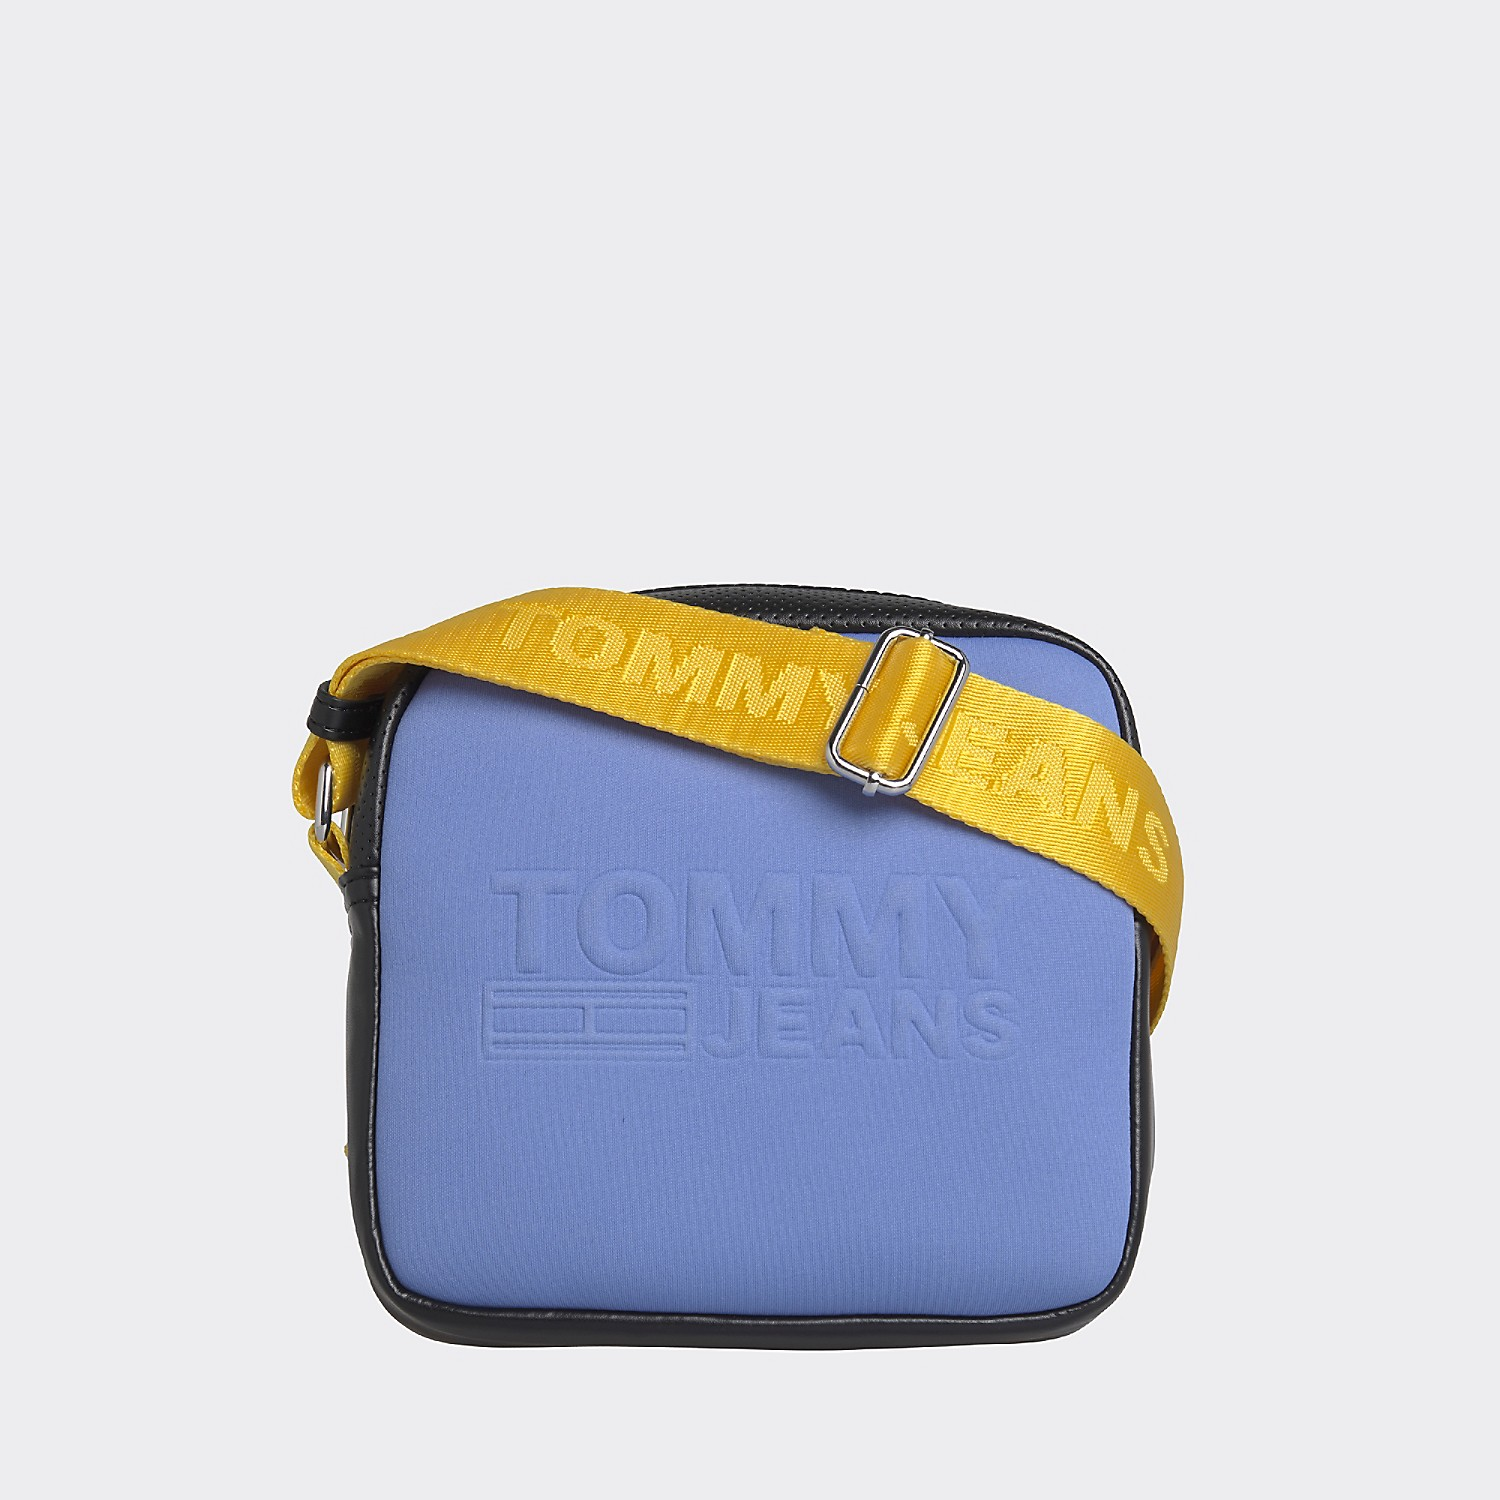 Tommy hilfiger Embossed Crossbody Bag